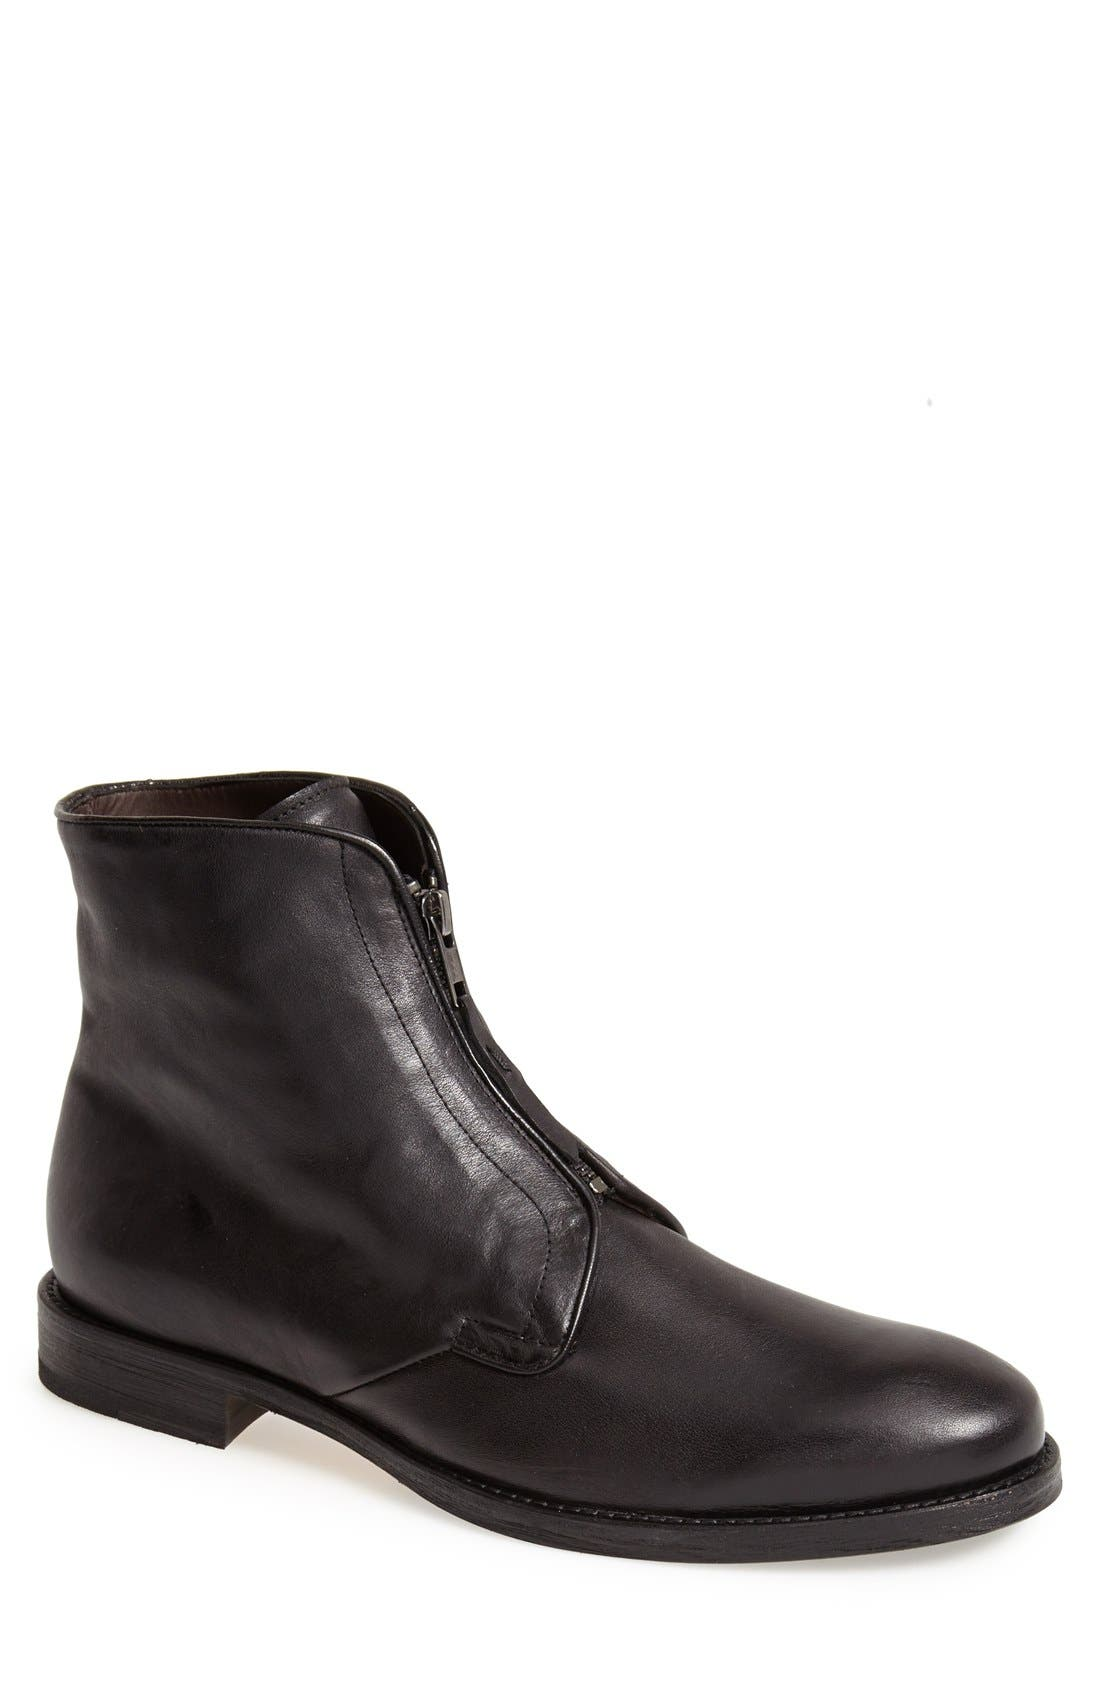 Alternate Image 1 Selected - Maison Forte 'Guerra' Zip Boot